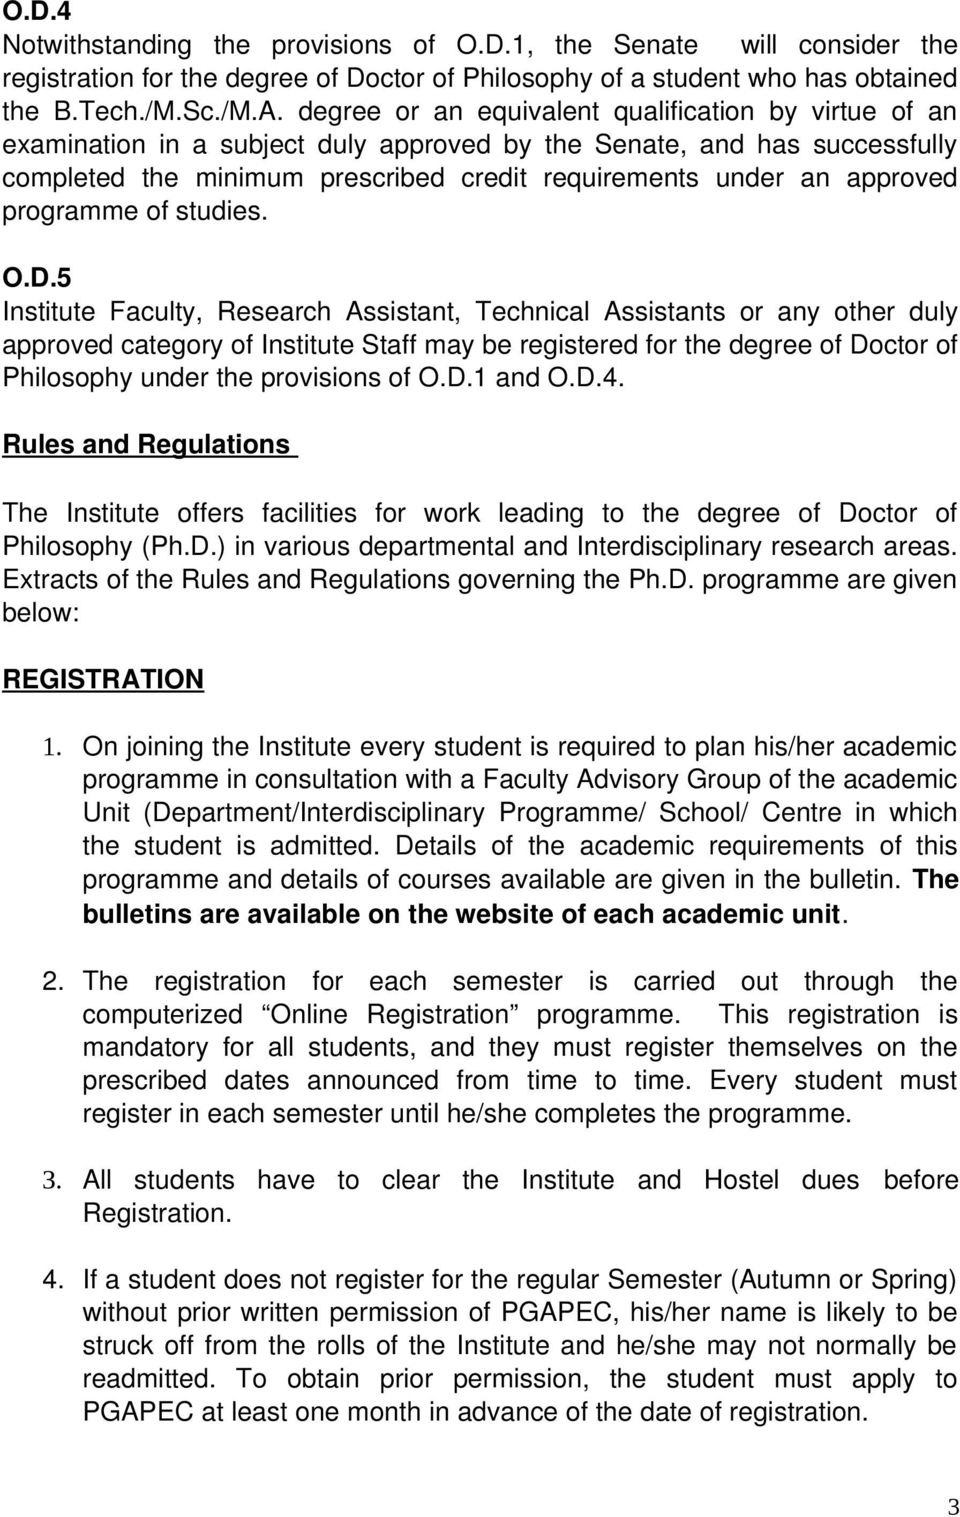 INDIAN INSTITUTE OF TECHNOLOGY BOMBAY RULES AND REGULATIONS - PDF